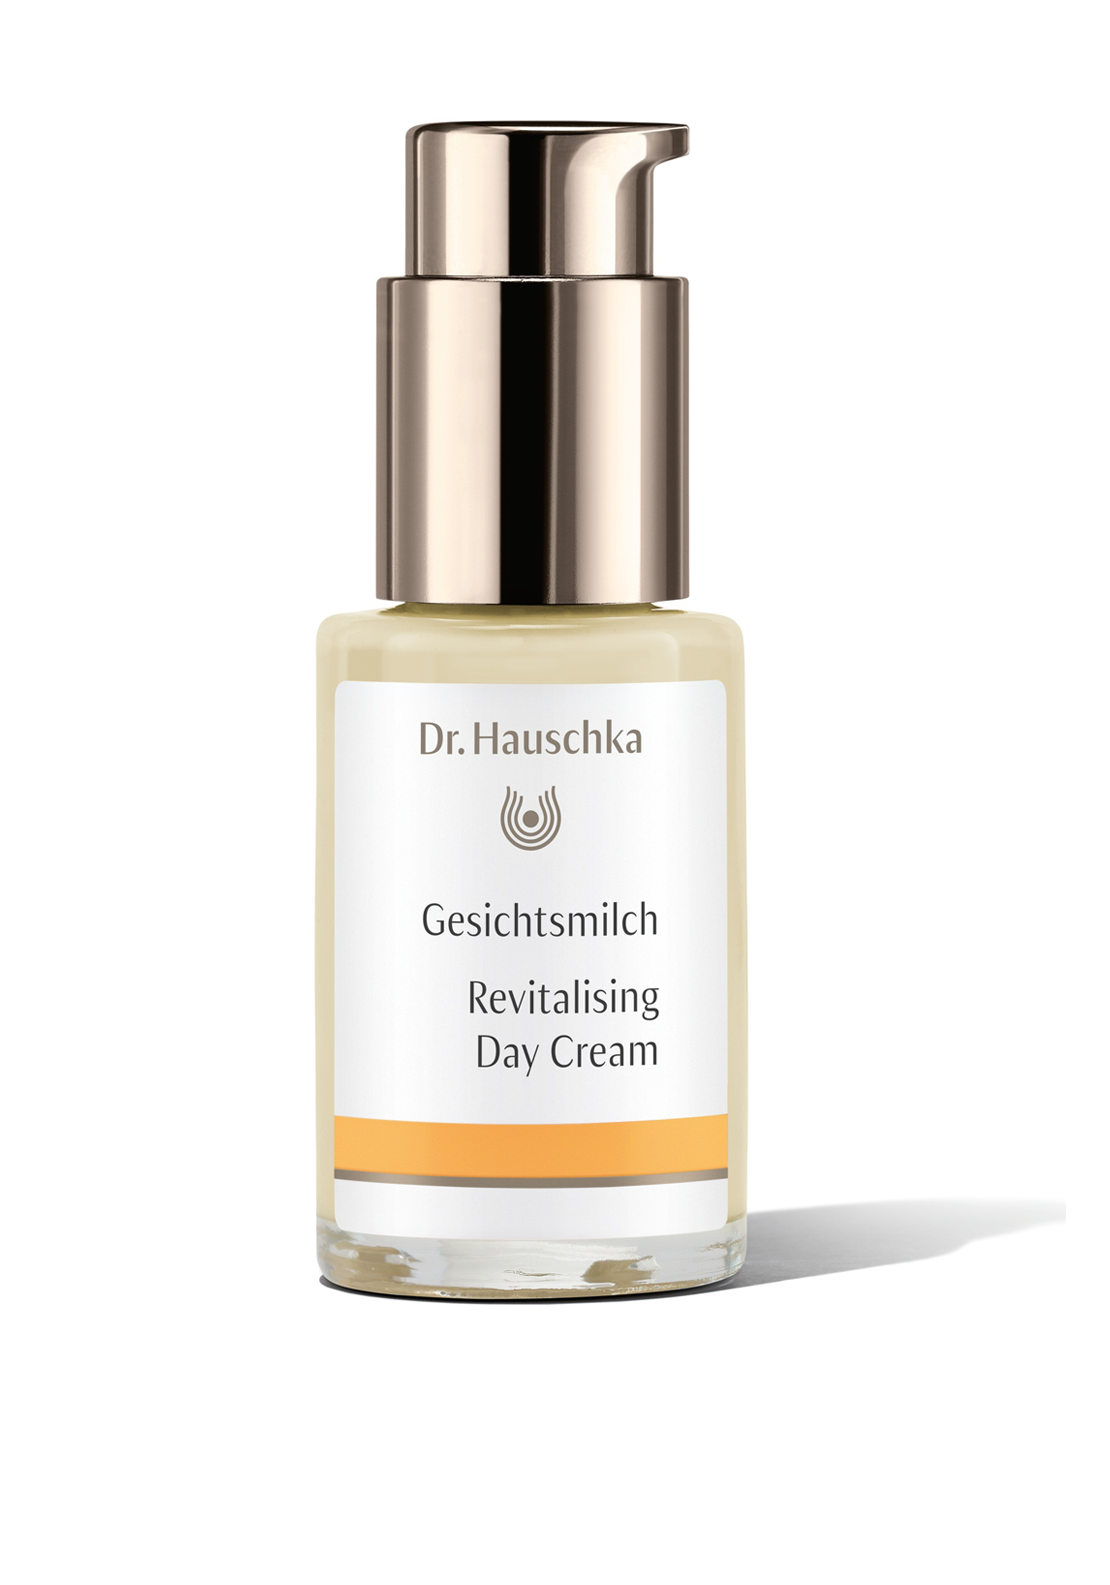 Dr. Hauschka Revitalising Day Cream, 30ml